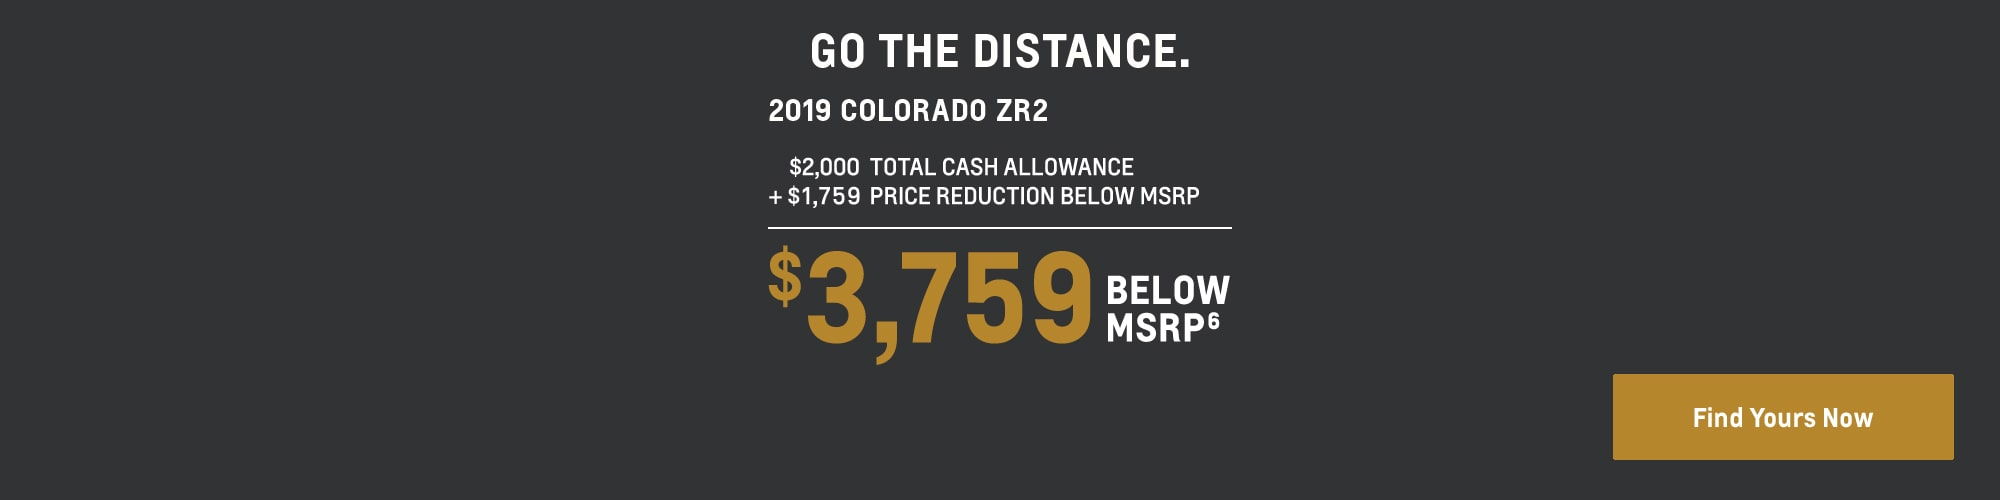 2019 Colorado: $3,759 Below MSRP